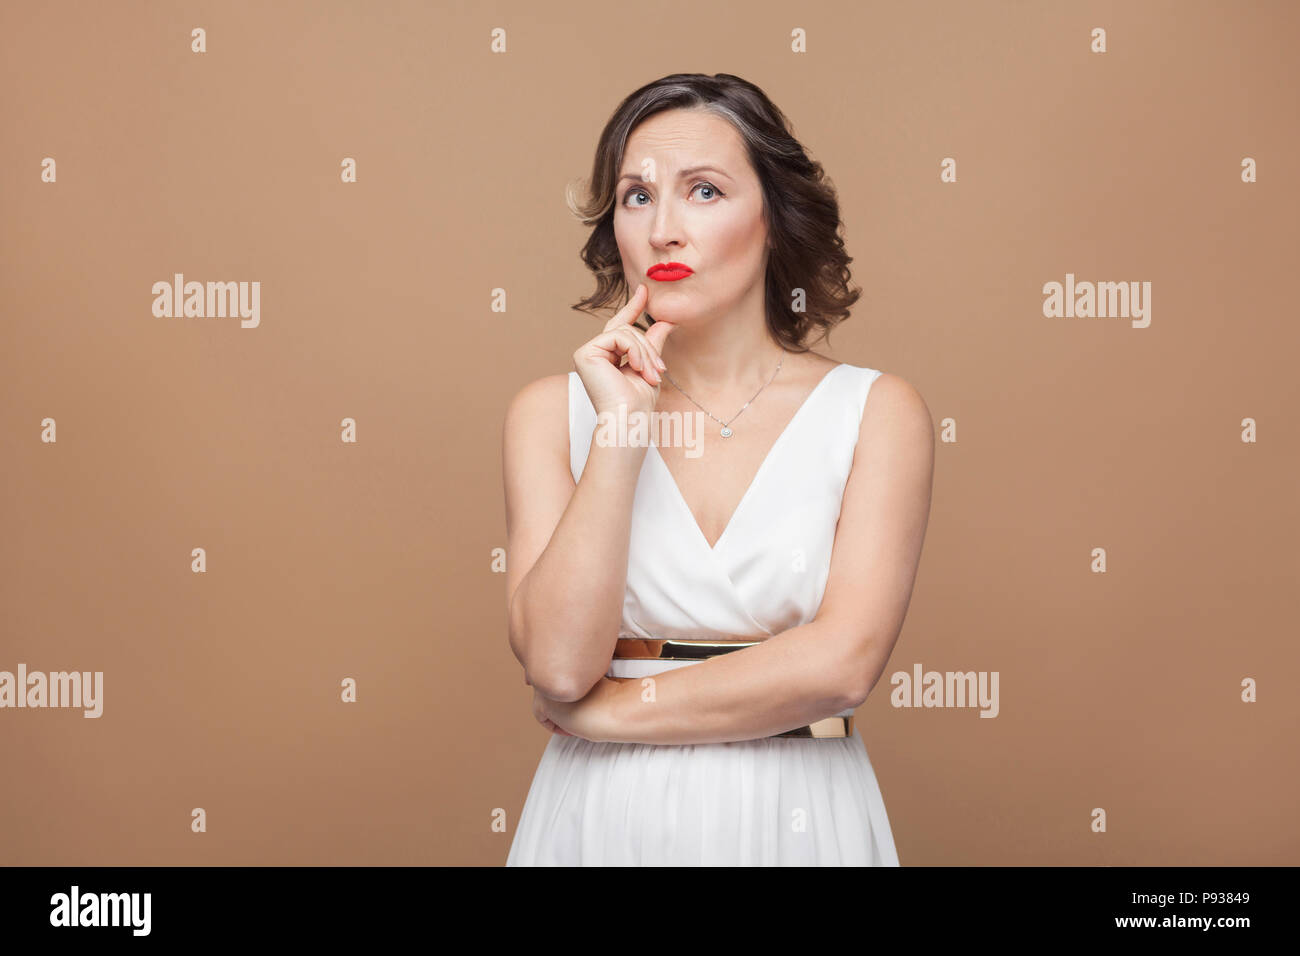 Handsome middle aged woman thinking and puzzled. Emotional expressing woman in white dress, red lips and dark curly hairstyle. Studio shot, indoor, is - Stock Image